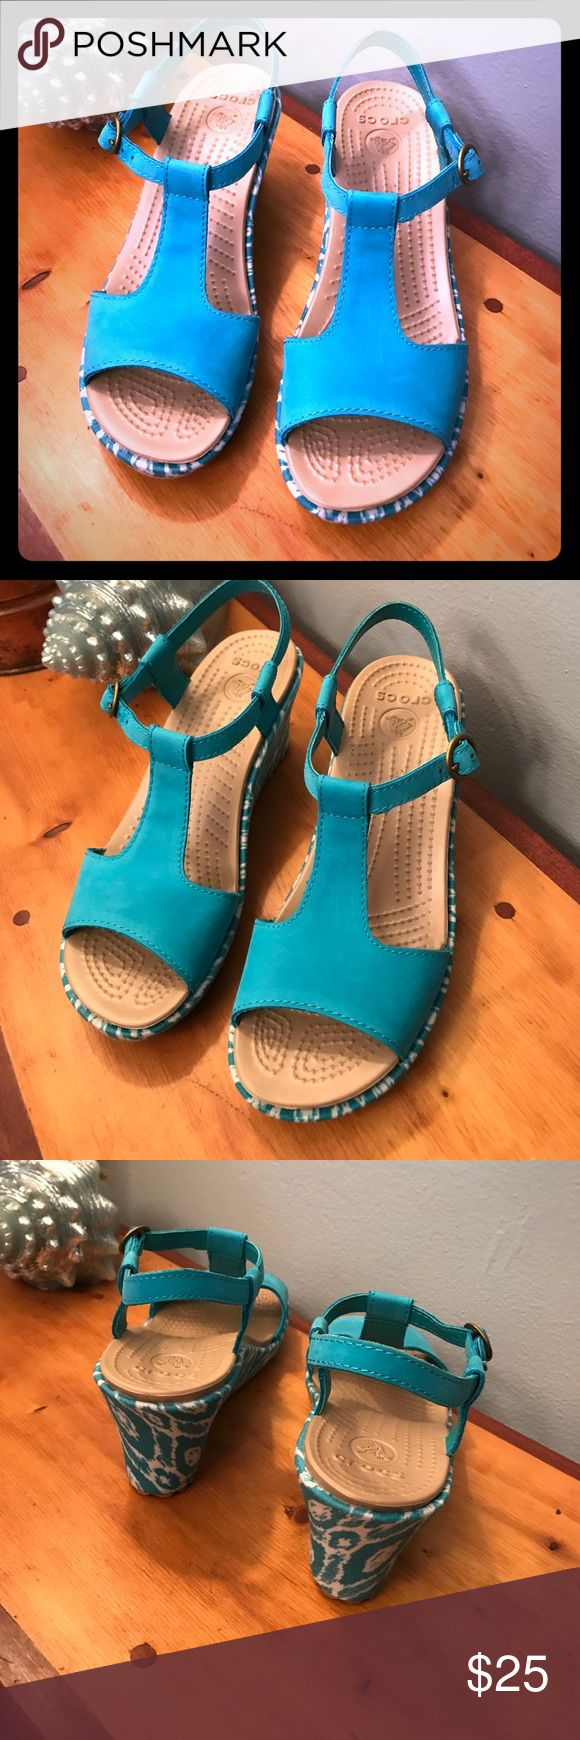 Crocs 7 teal sandals wedges See photos for details and measurements (#813) CROCS Shoes Wedges